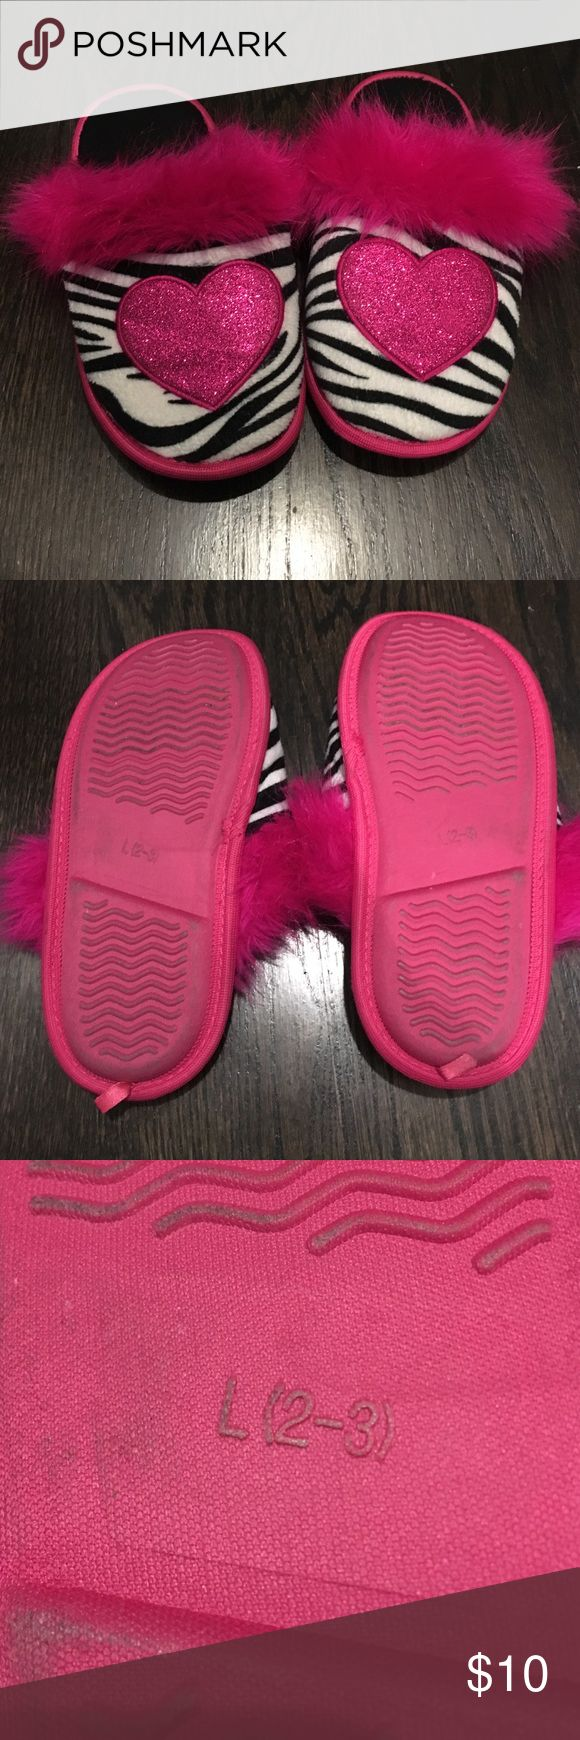 Pink Zebra Glitter Heart Slippers Sz L (2/3) Pink Zebra and Sparkle Heart Slippers Size L (2/3) Girls Xhilaration Shoes Slippers